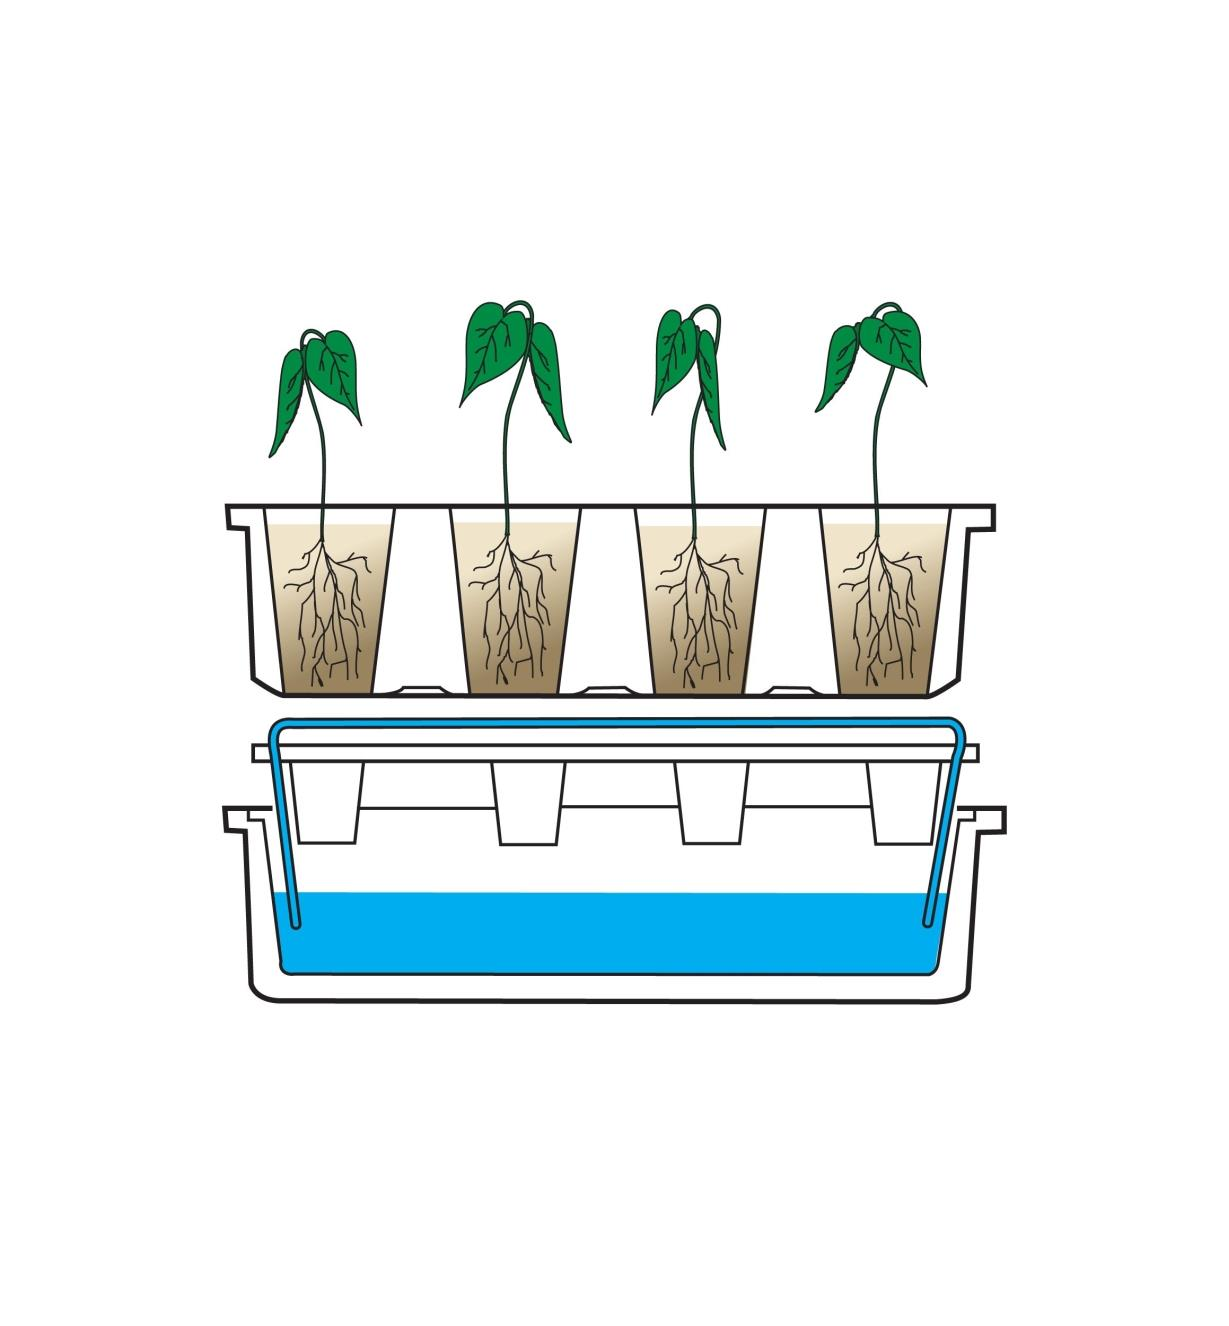 Diagram demonstrating how the capillary mat is draped over the reservoir with the mat ends in the water, and the seed tray is placed on the mat